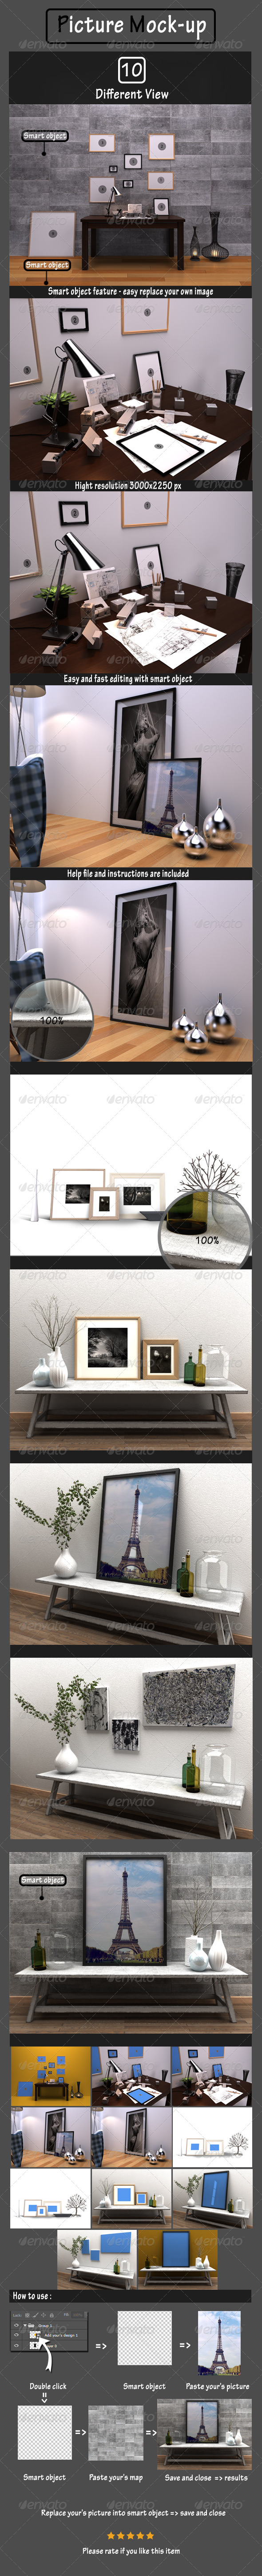 GraphicRiver Picture Mockup 7139721